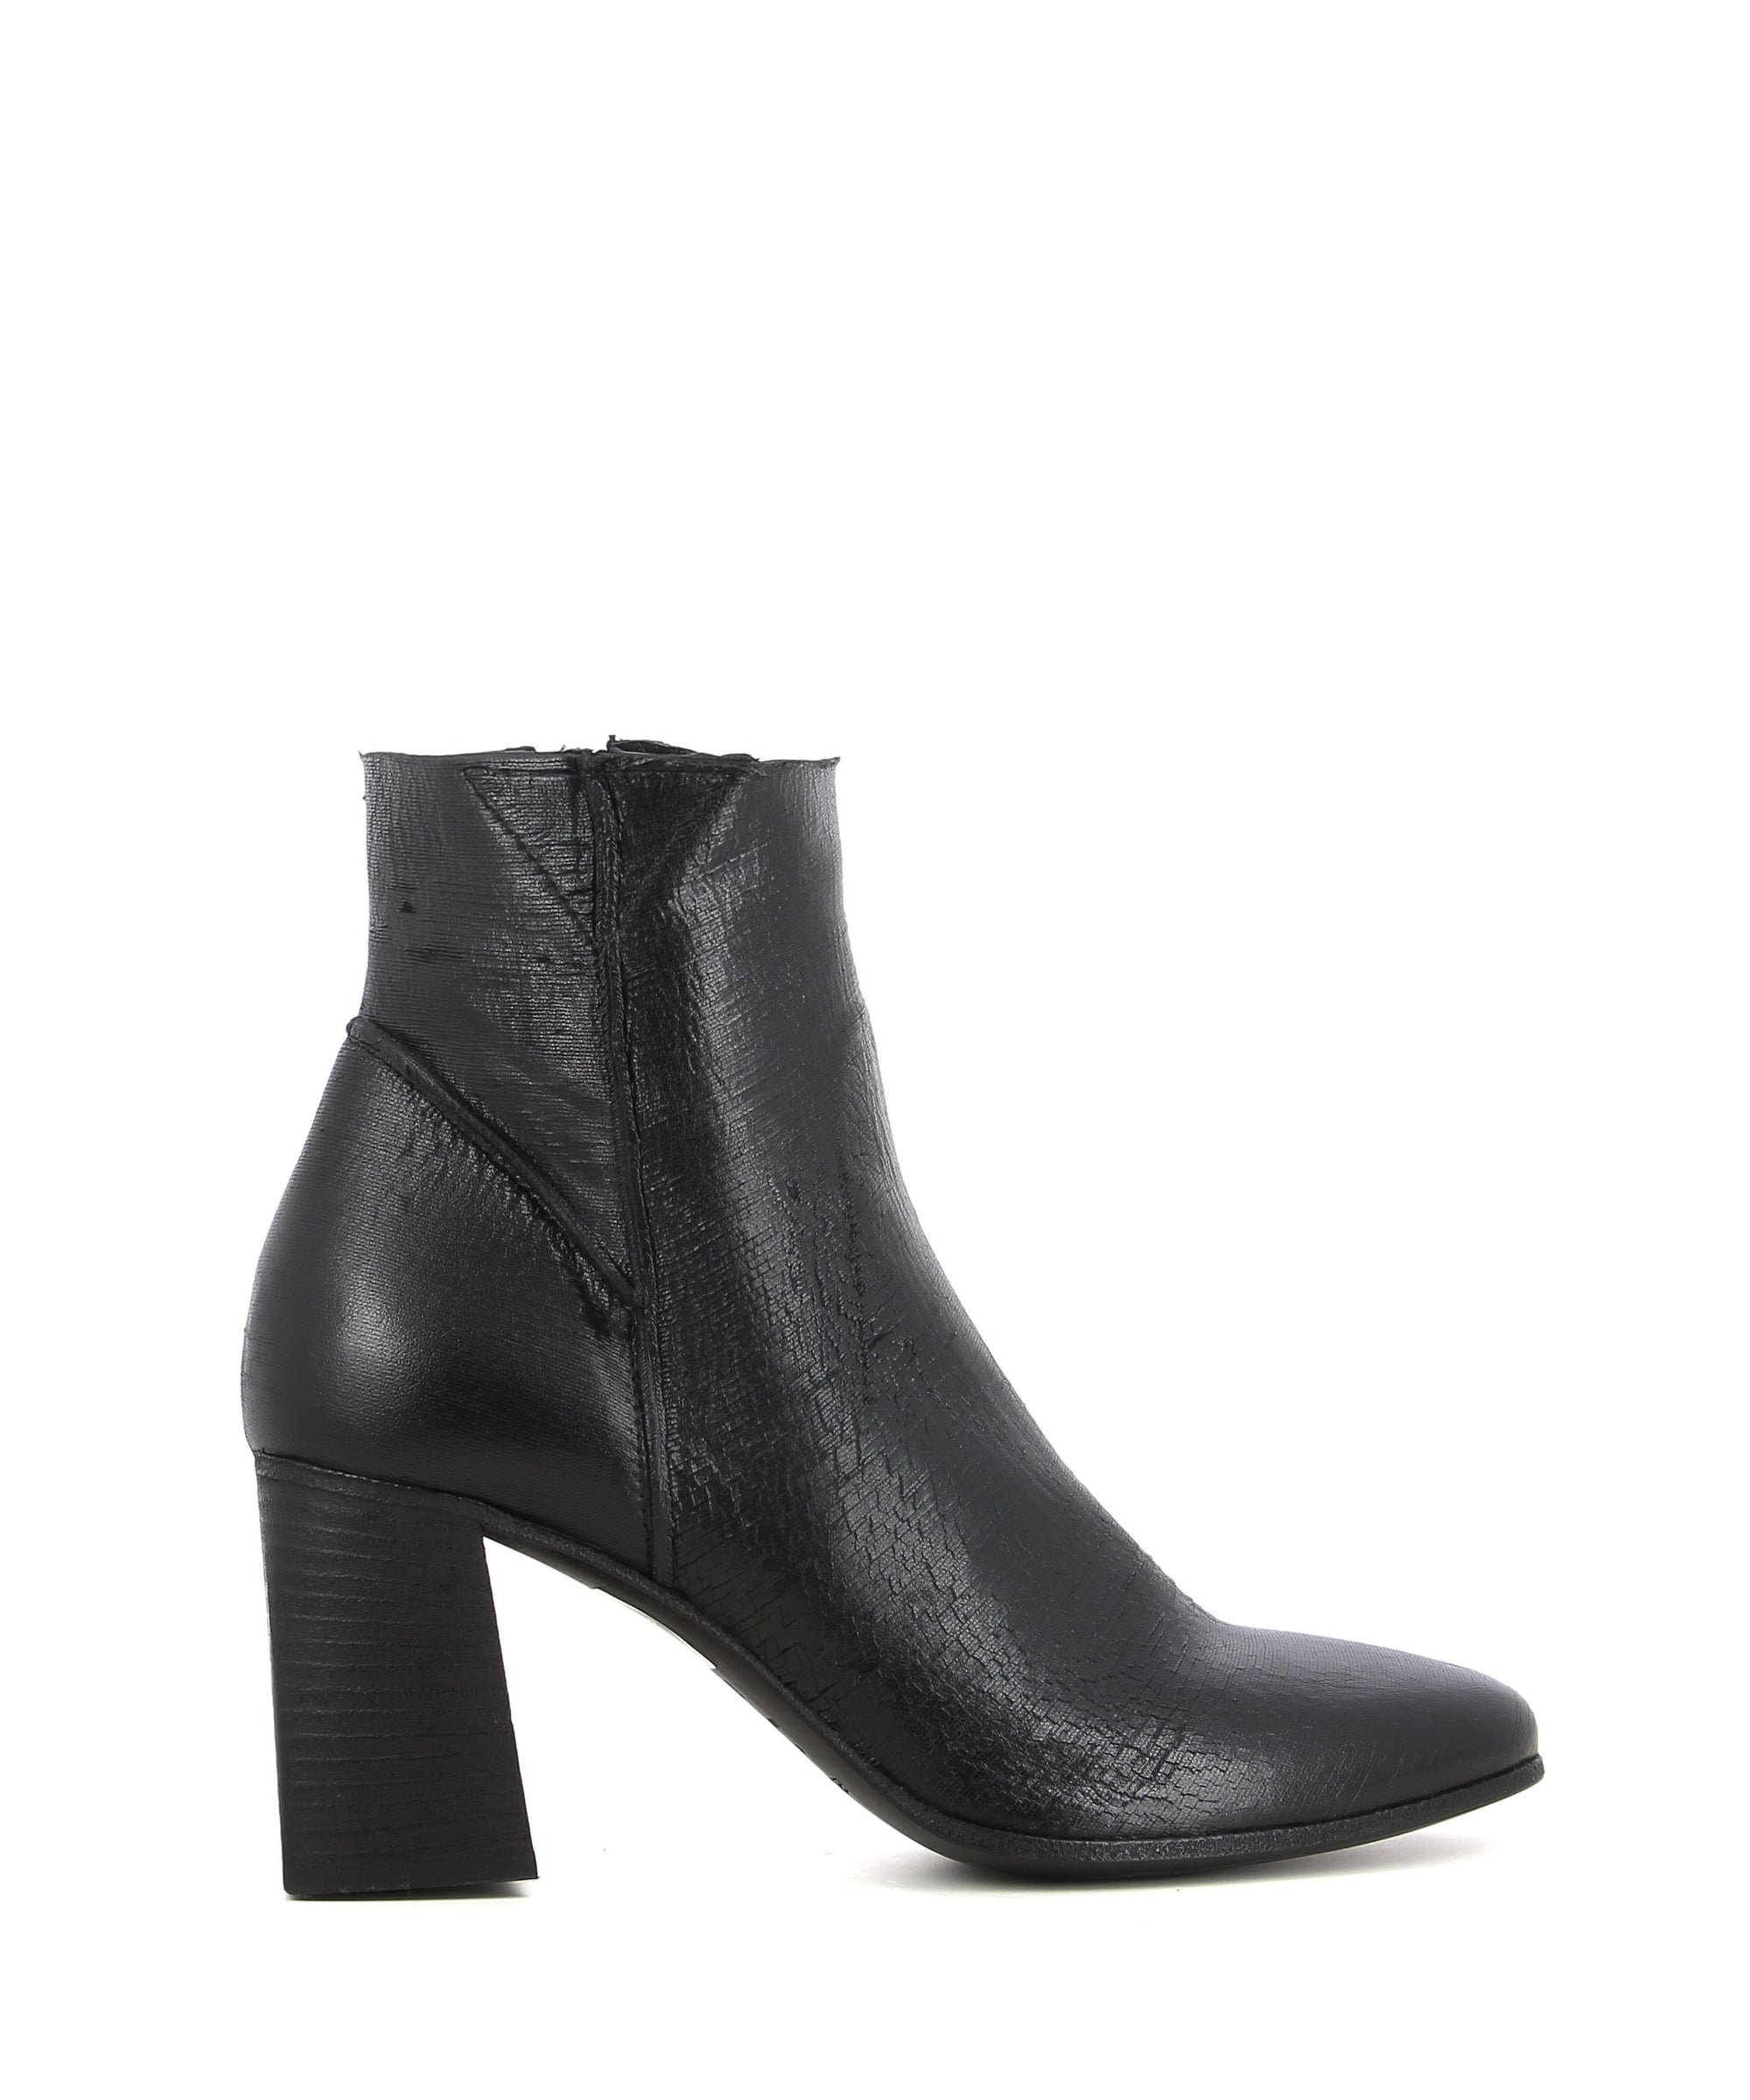 A black Italian leather ankle boot by Elena Iachi. The 'E2331' has zipper fastening and features a laser cut finish to the upper, a black block heel and a almond toe.